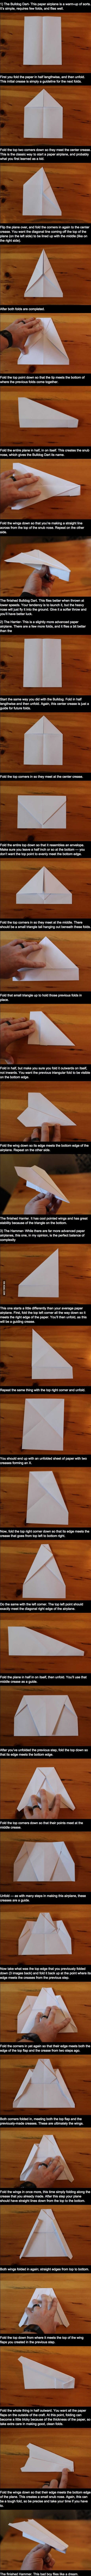 3 Best Paper Airplanes, Step By Step Guide